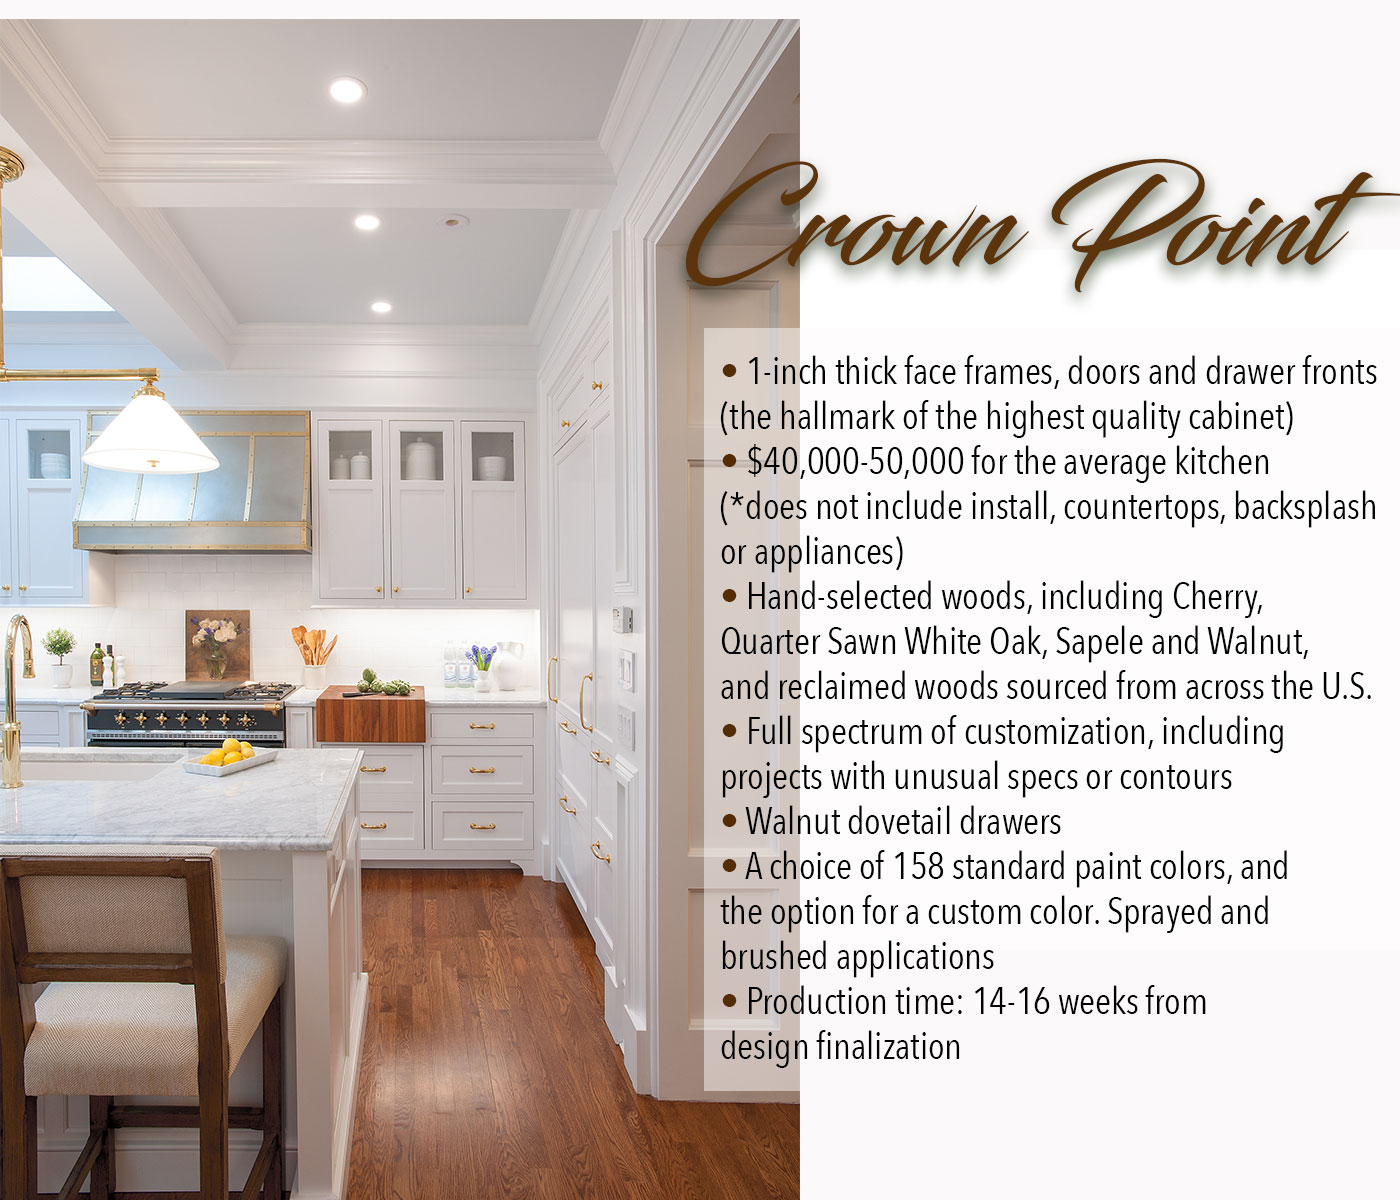 The quality and details of Crown Point Cabinetry